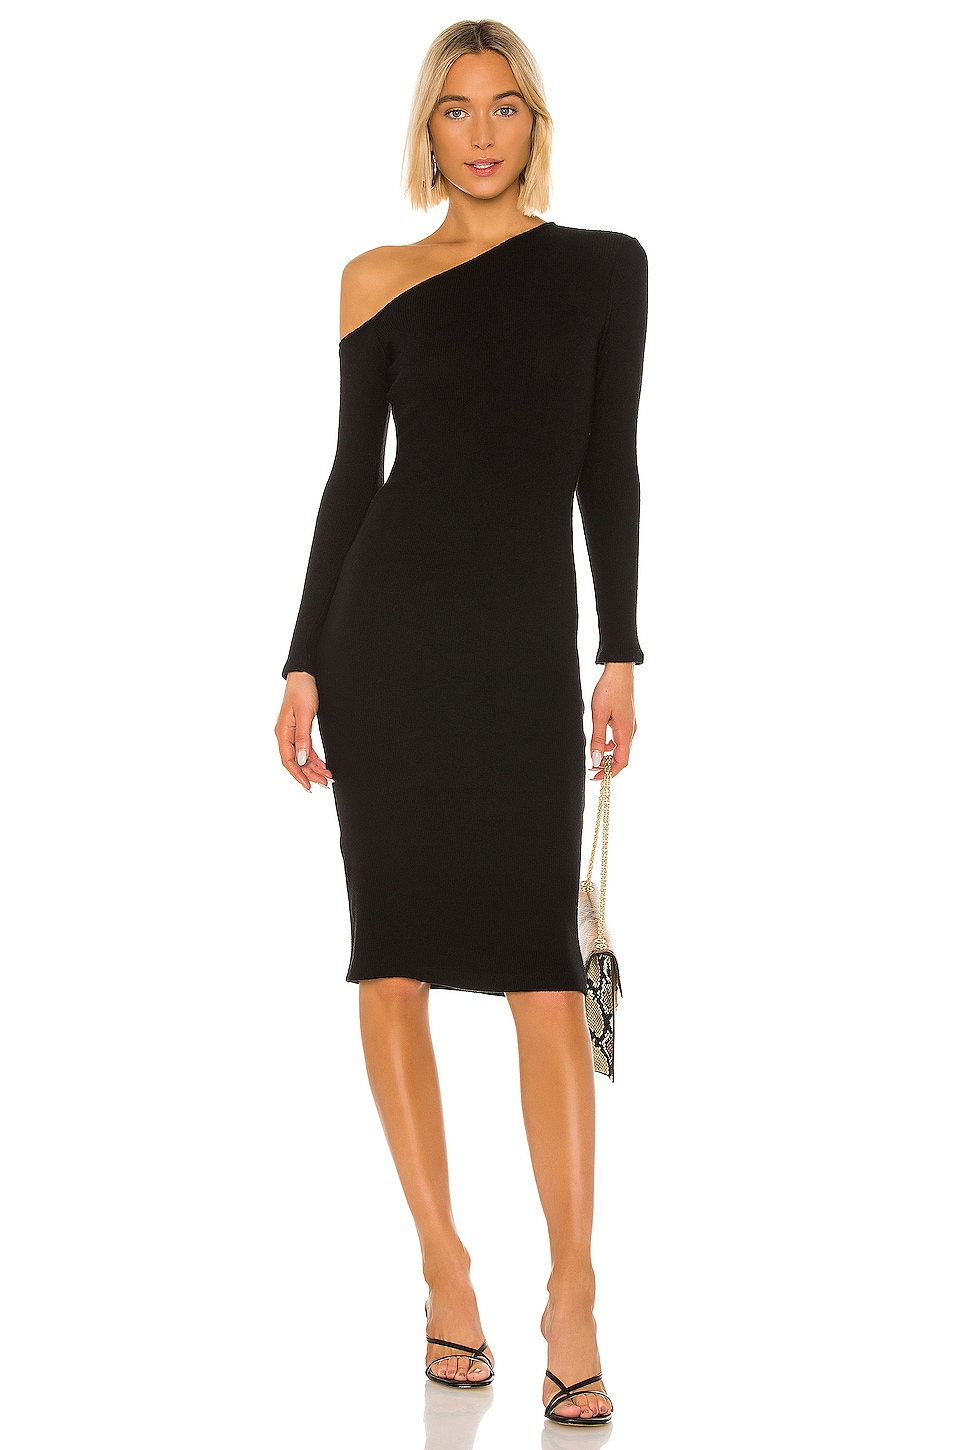 Enza Costa Sweater Knit Angled Midi Dress in Black